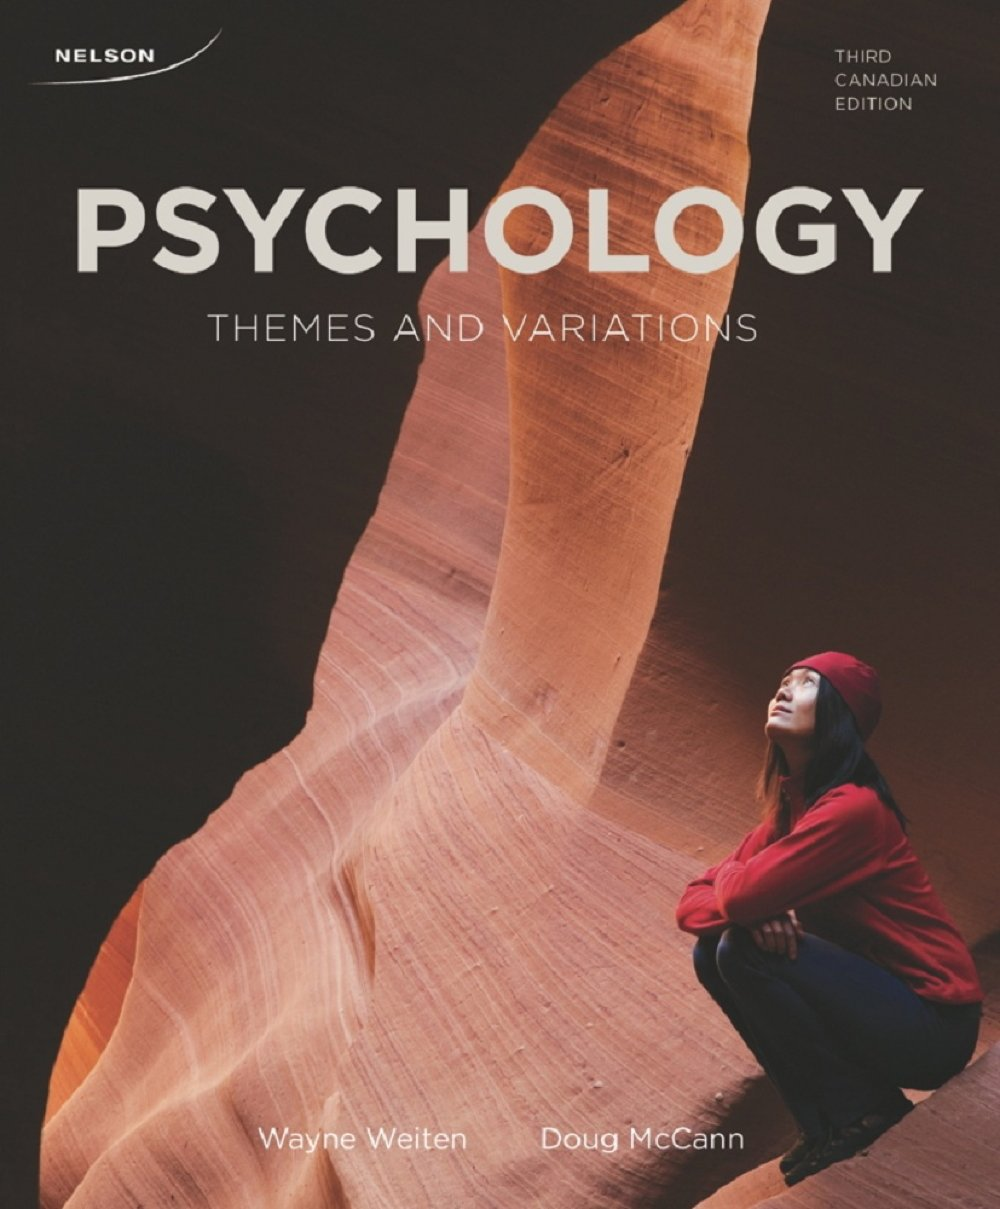 Psychology: Themes and Variations: Dr. Wayne Weiten, Dr. Doug McCann:  9780176503734: Psychotherapy: Amazon Canada